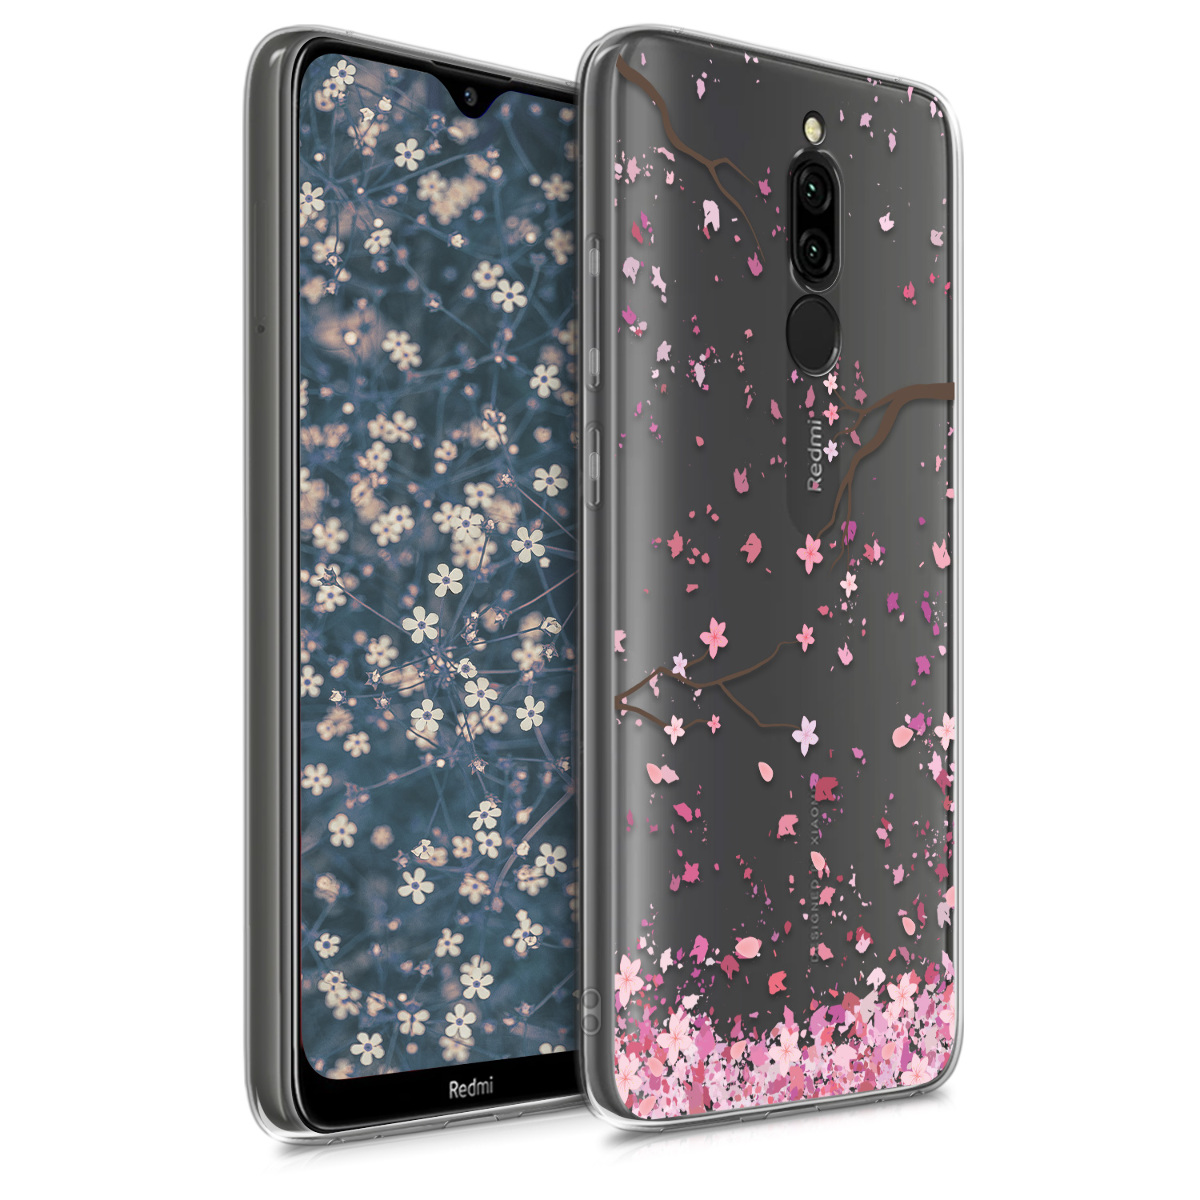 KW Θήκη Σιλικόνης Xiaomi Redmi 8 - Cherry Blossoms - Light Pink / Dark Brown / Transparent (50849.01)